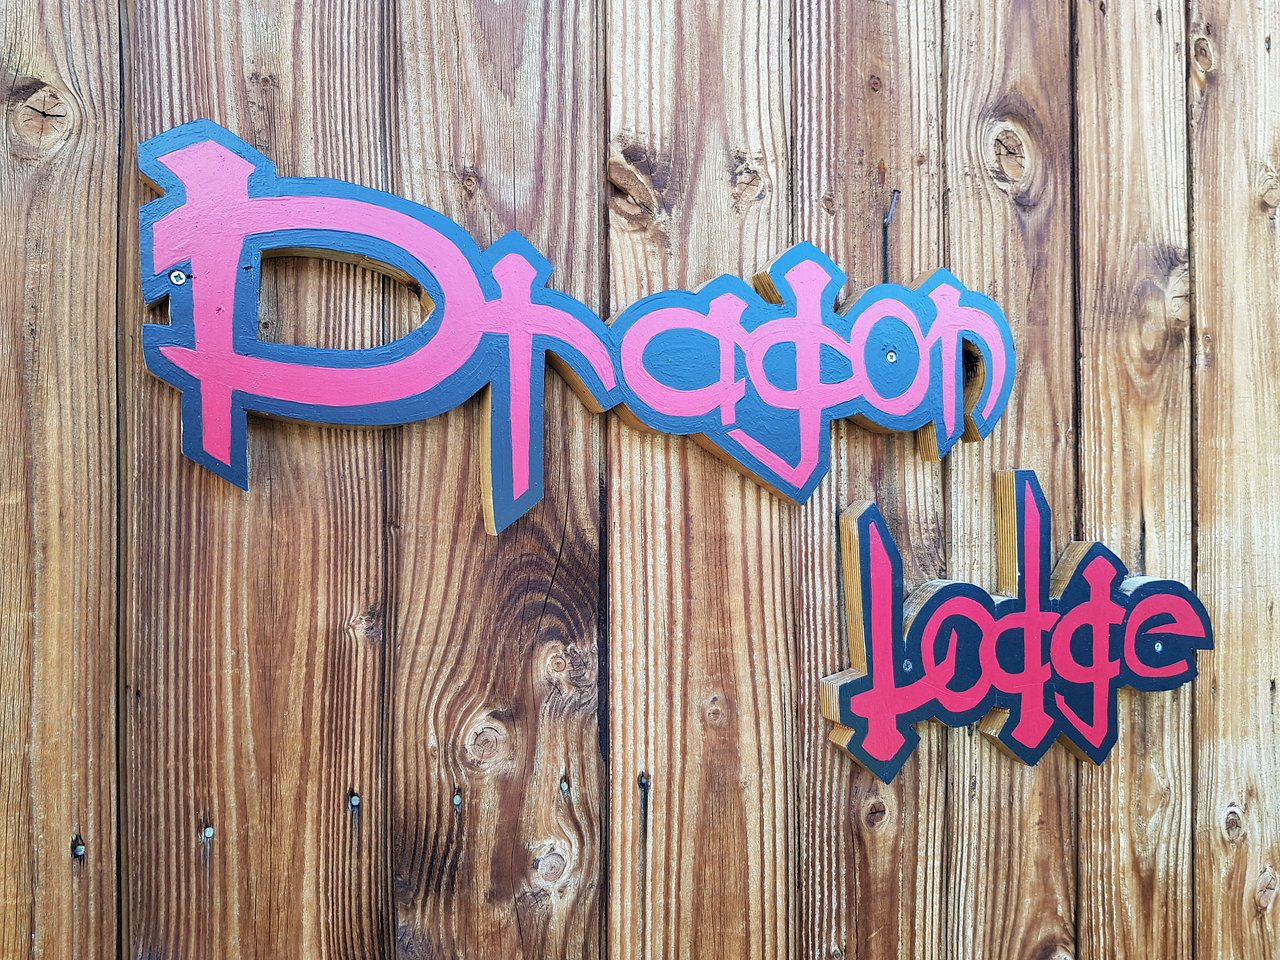 DRAGON LODGE - Prices & Reviews (Tignes, France) - TripAdvisor